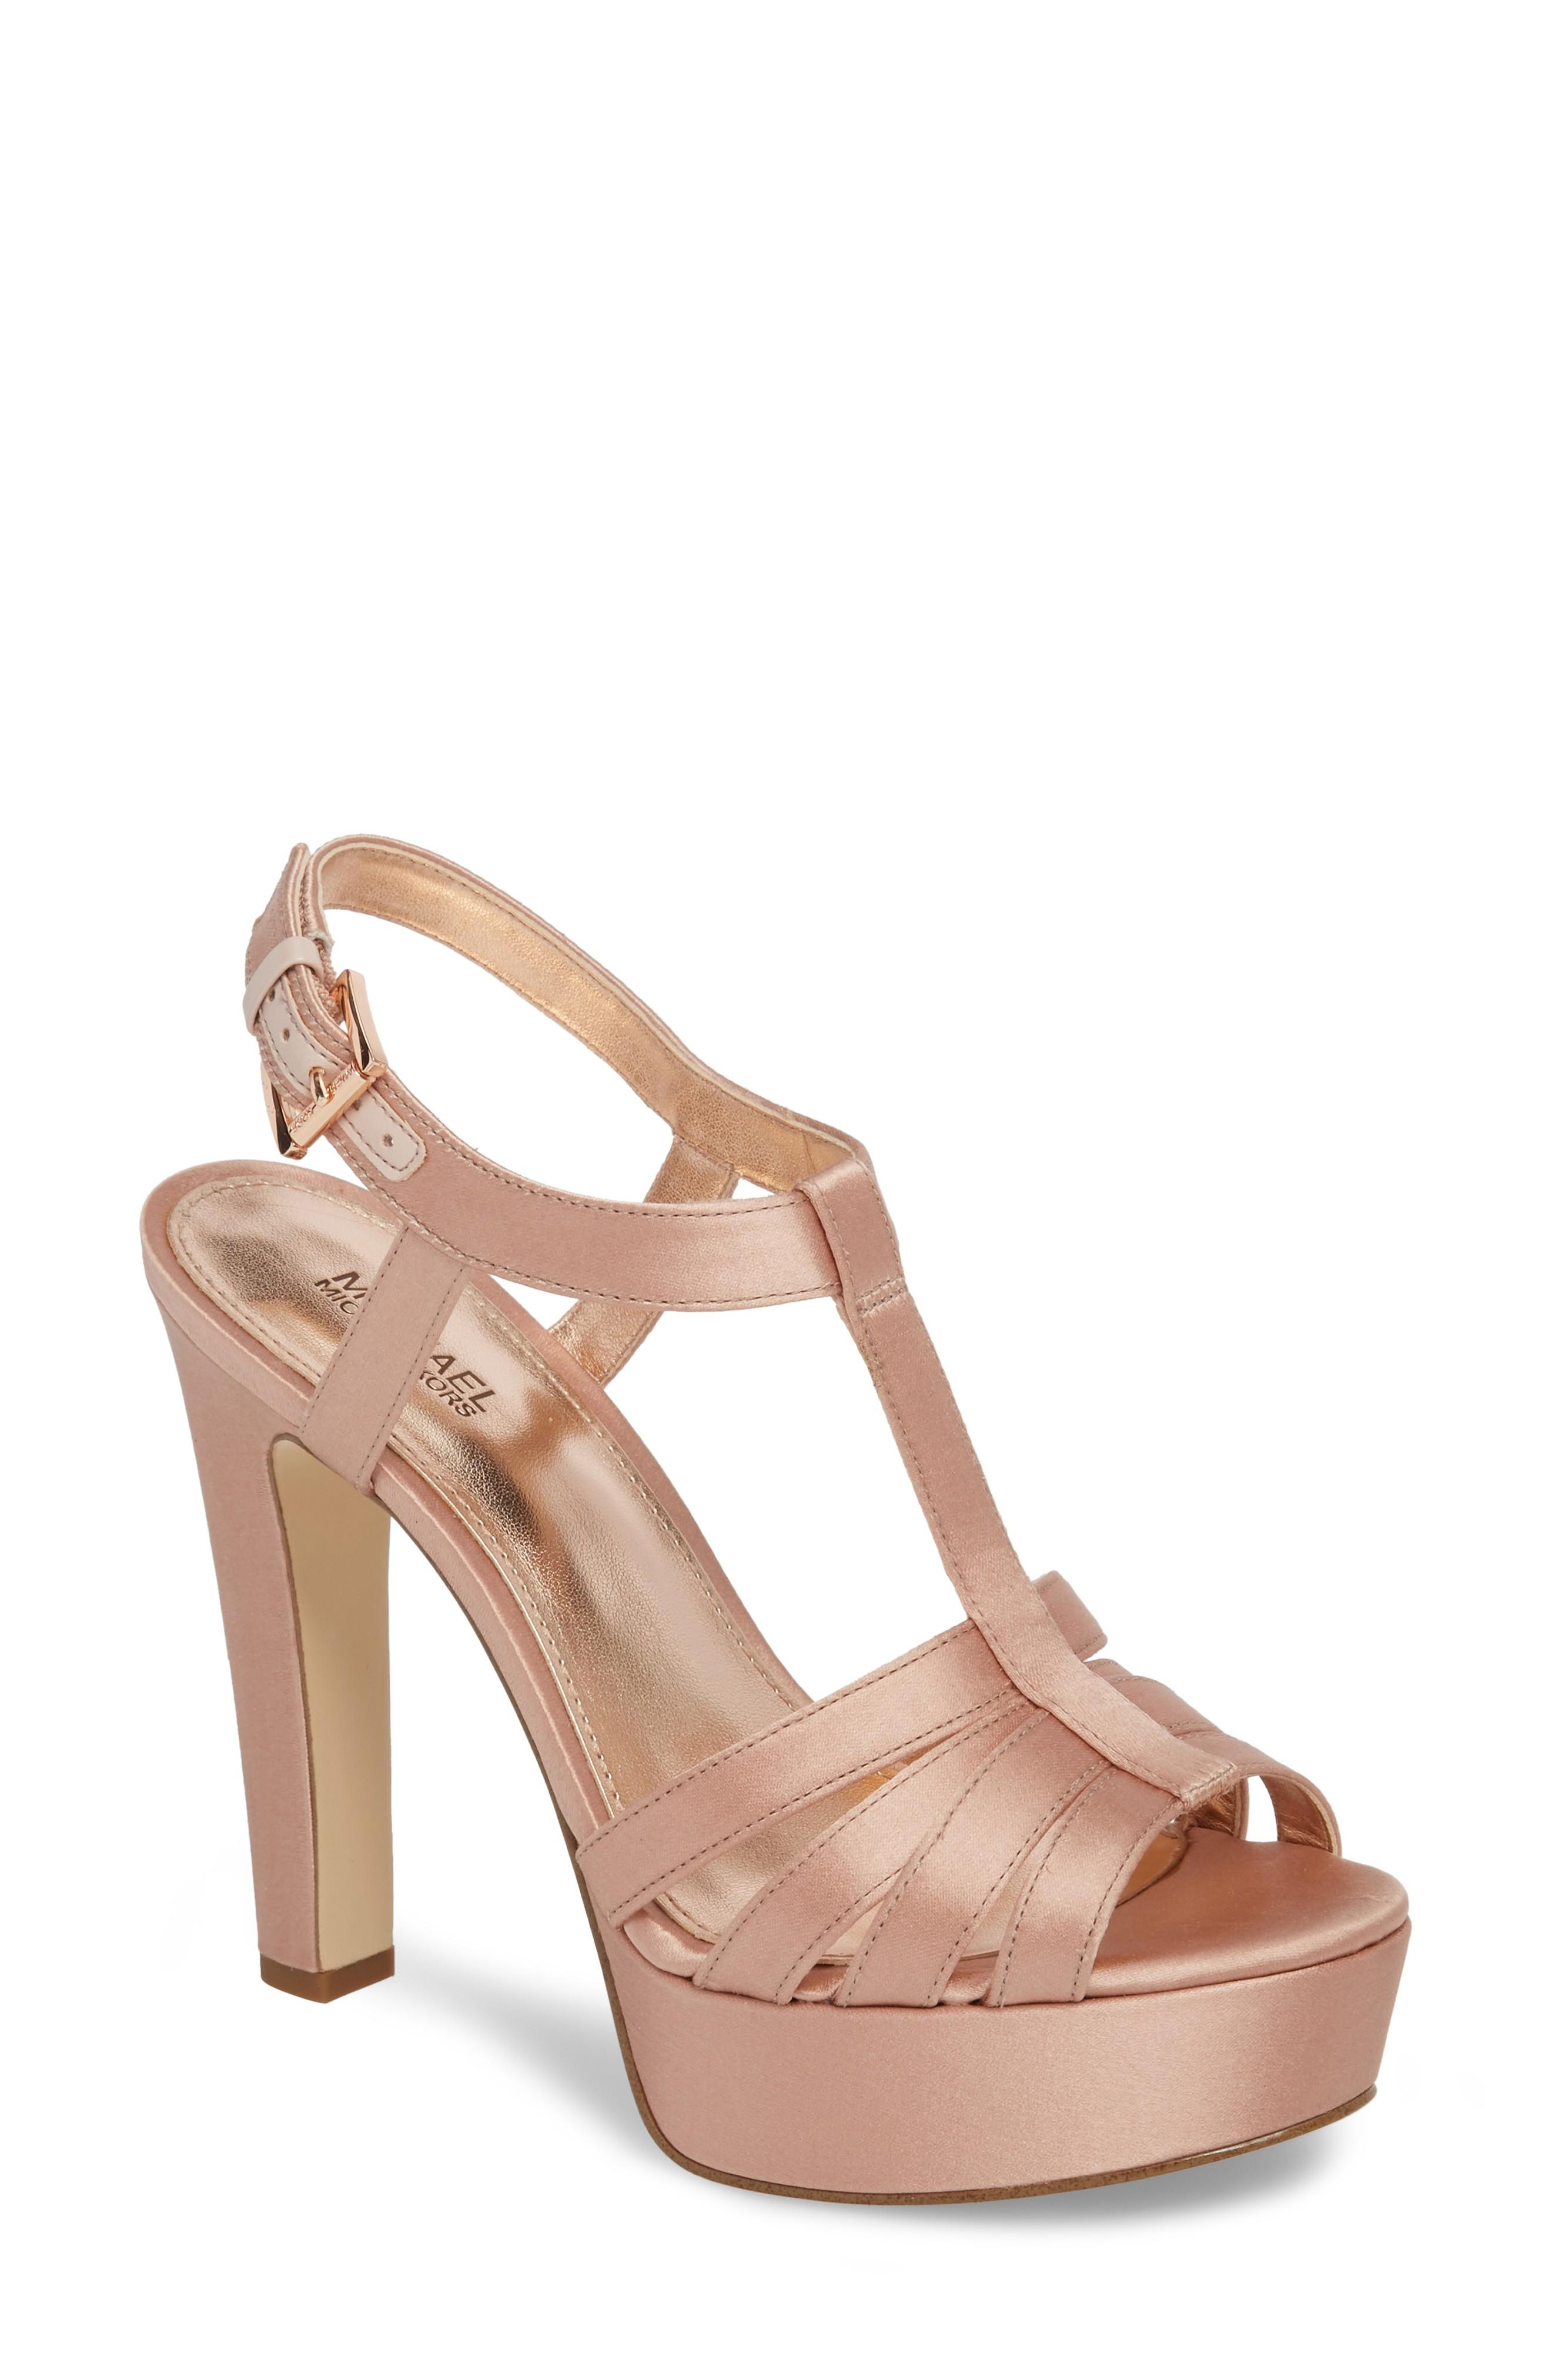 1f69e19142a Style Name  Michael Michael Kors Catalina Platform Sandal (Women). Style  Number  5294415. Available in stores.